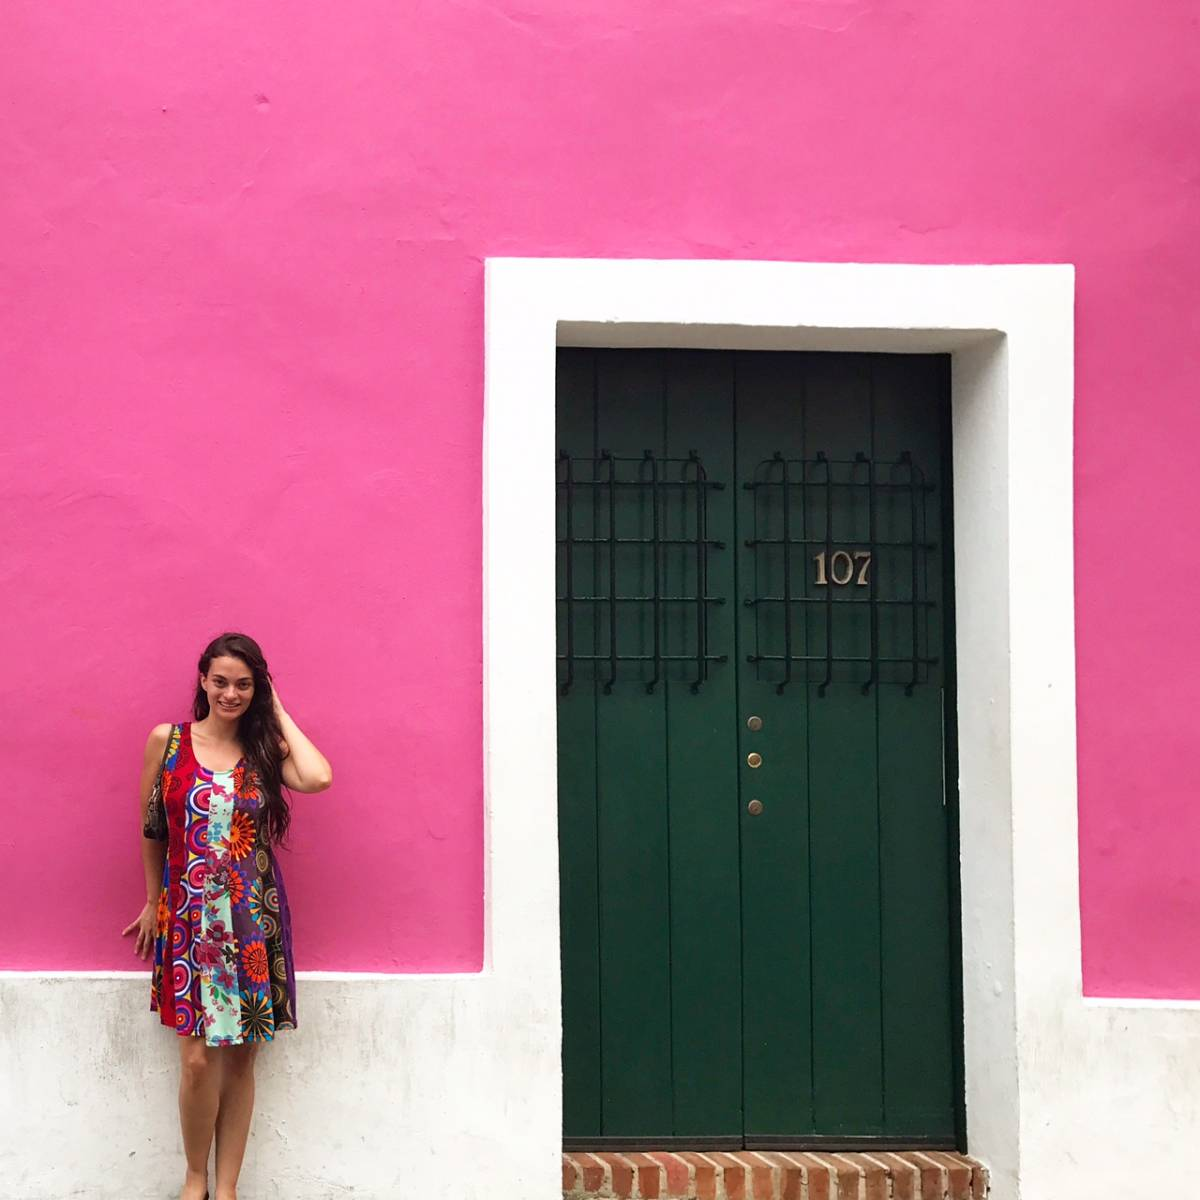 Tasting Your Way Through the Streets of Old San Juan With Spoon Food Tours